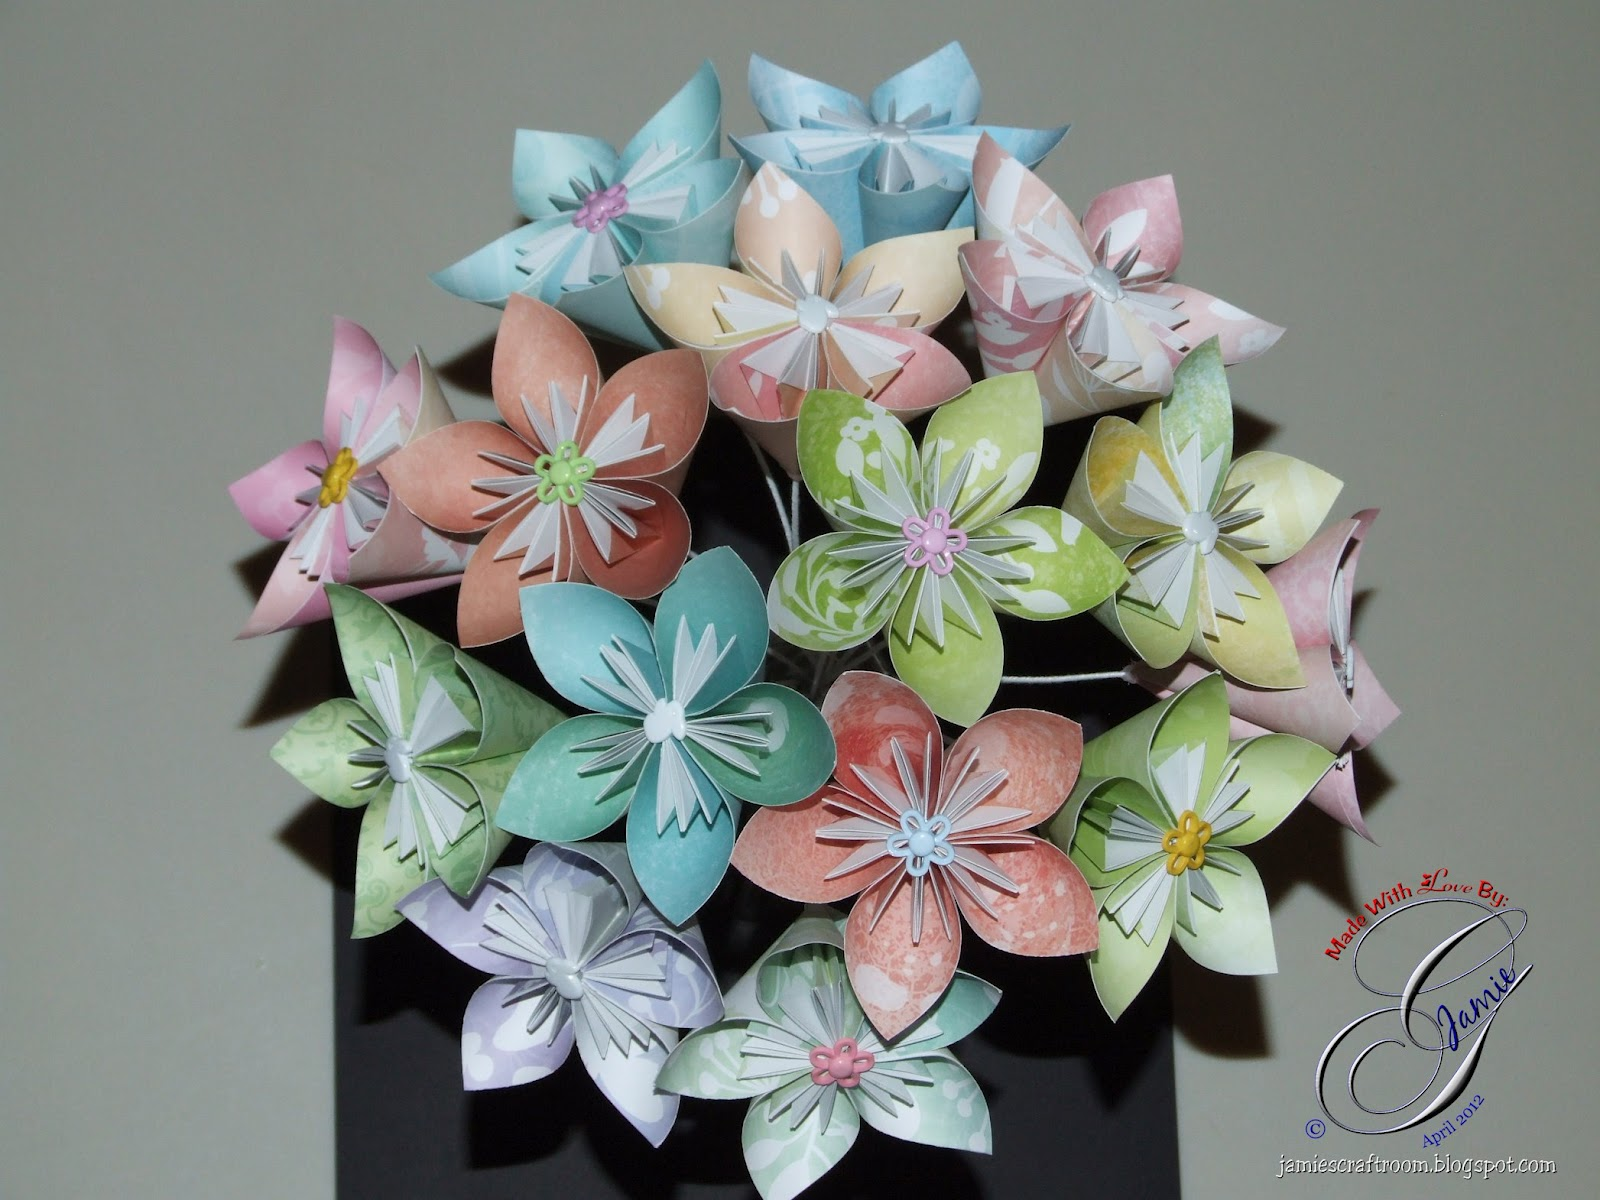 Jamies Craft Room Kusudama Flower Bouquet Assembly